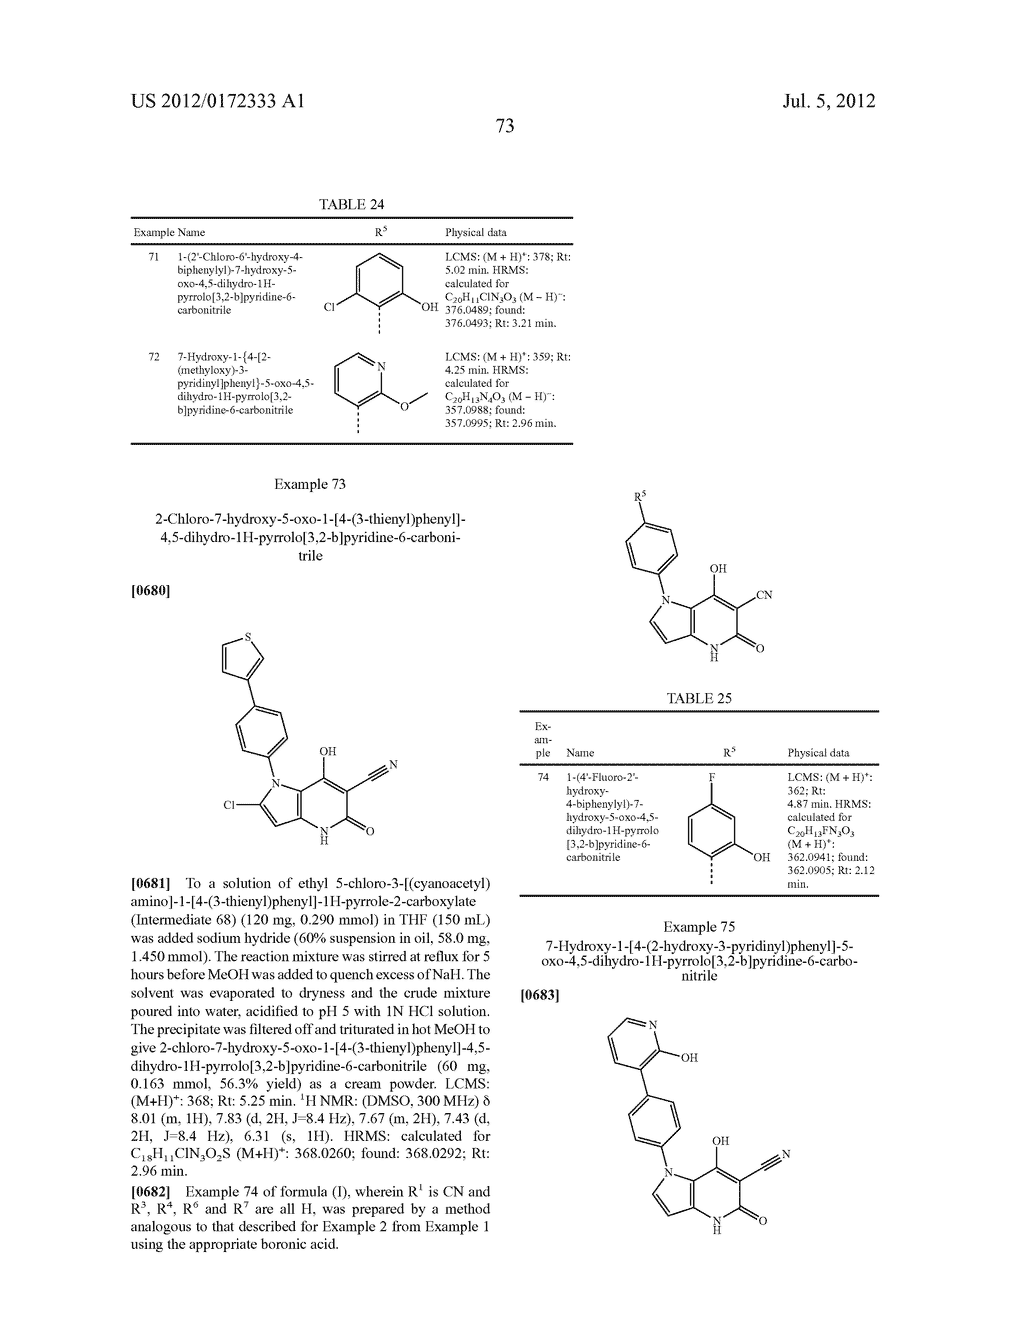 PYRROLO-PYRIDINE DERIVATIVES AS ACTIVATORS OF AMPK - diagram, schematic, and image 74